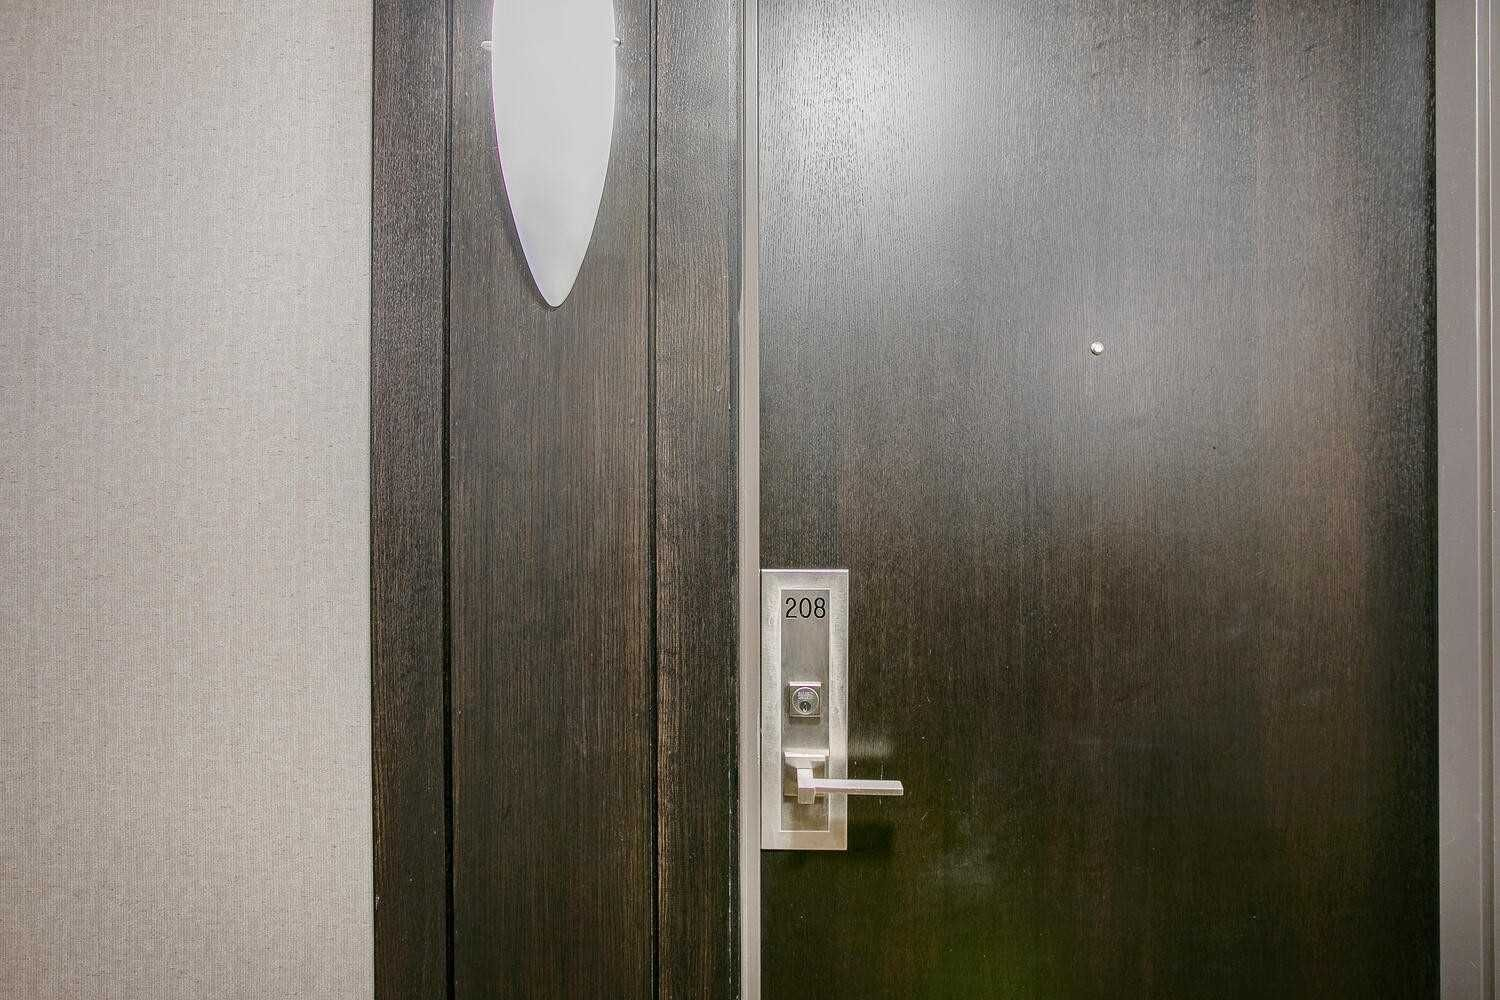 1070 Sheppard Ave W, unit #208 for sale in York University Heights - image #1